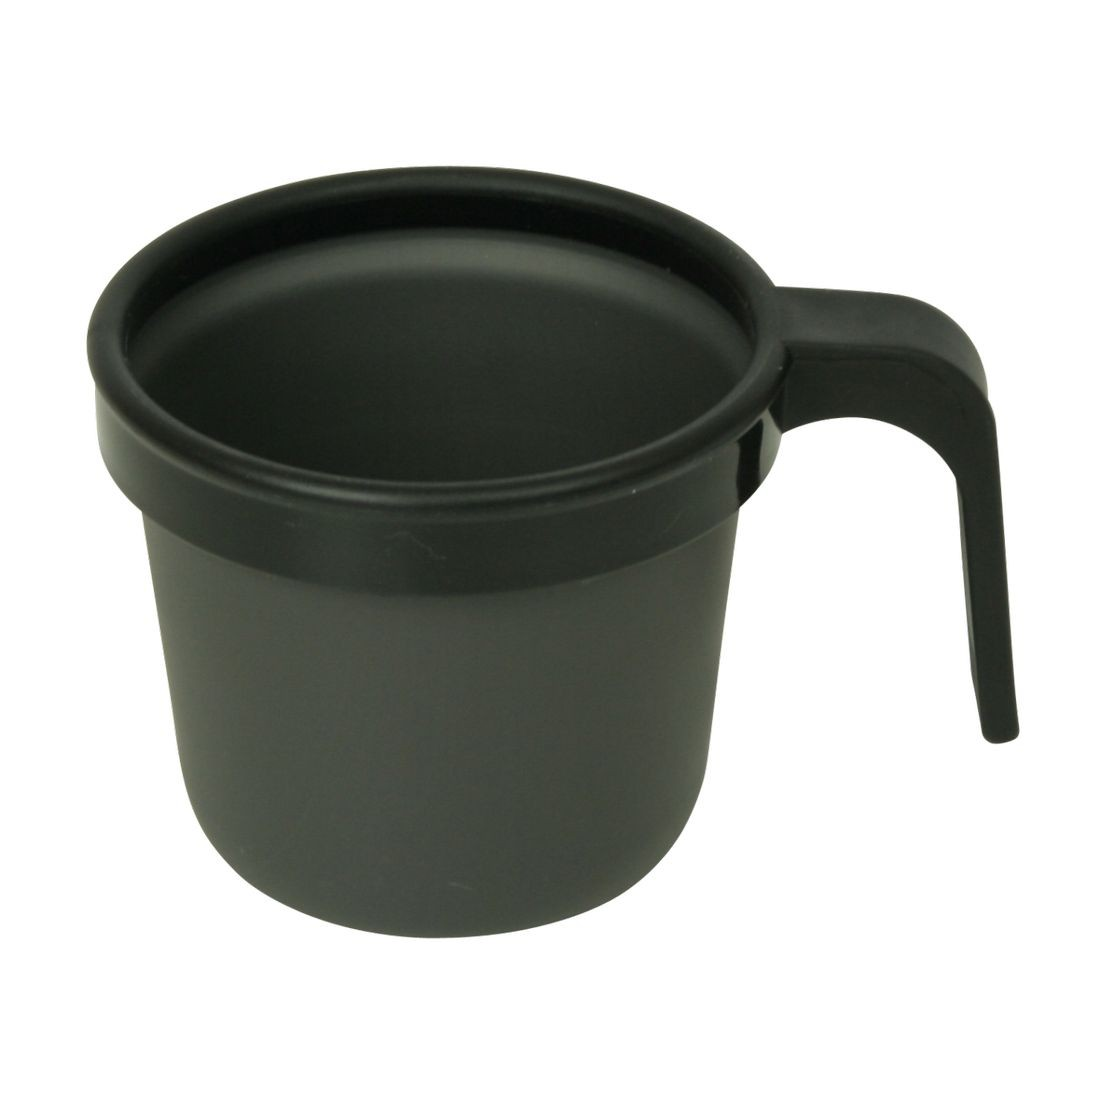 10t cup 300 camping becher 250ml tasse alu eloxiert mit. Black Bedroom Furniture Sets. Home Design Ideas